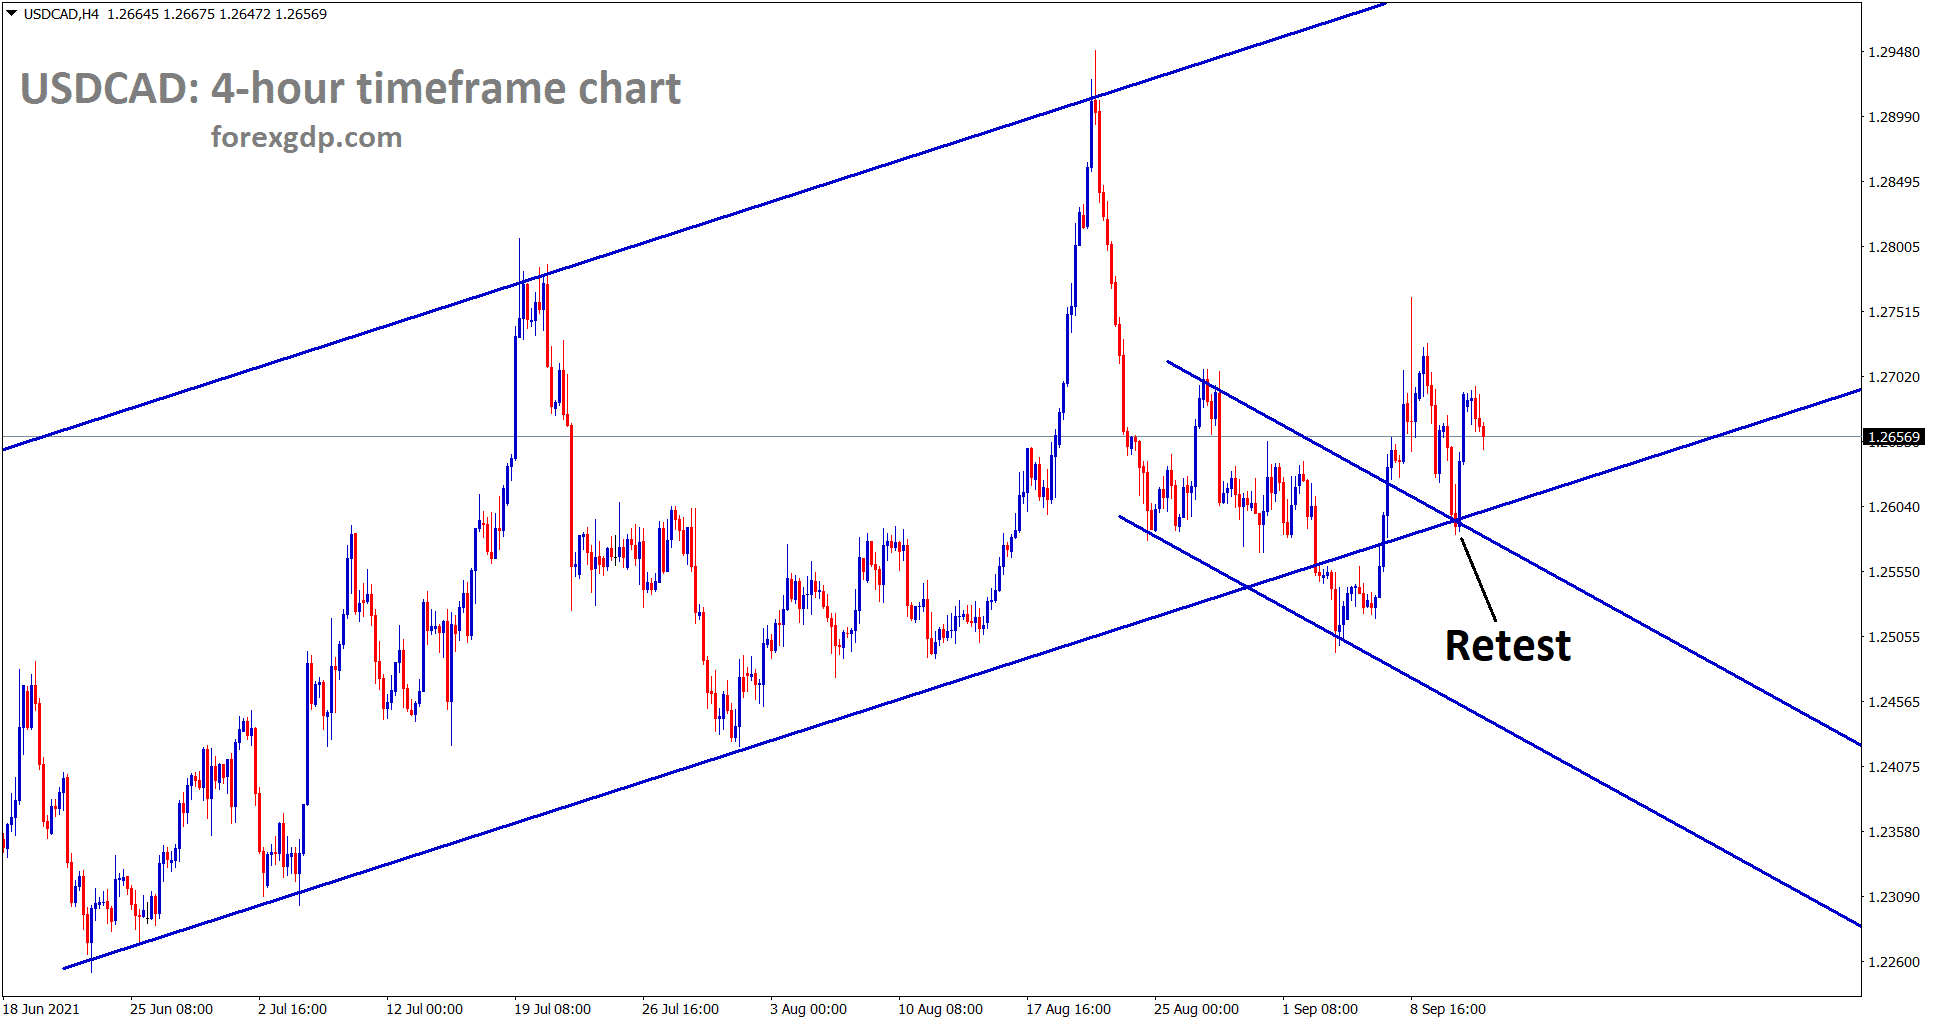 USDCAD has retested the minor descending channel line and bounces back